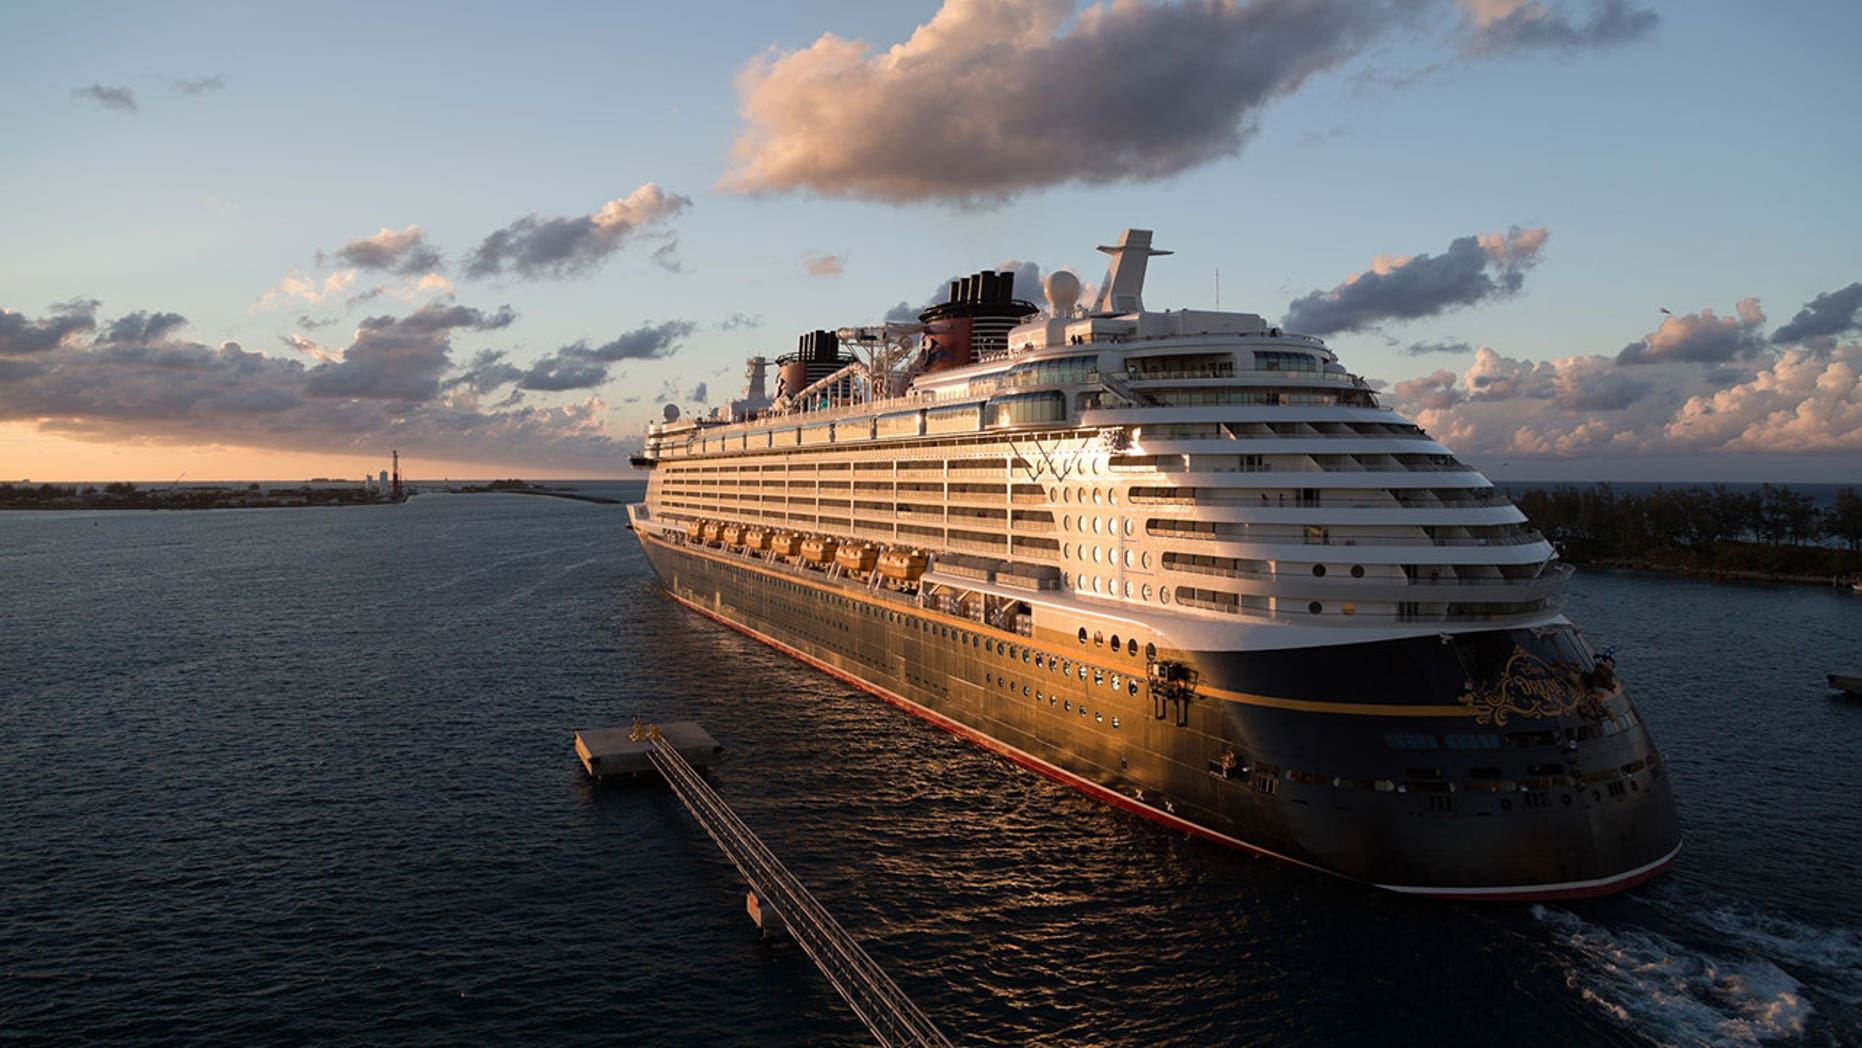 The Disney Dream cruise liner accidentally collided with a pier in Nassau, Bahamas, on Saturday.